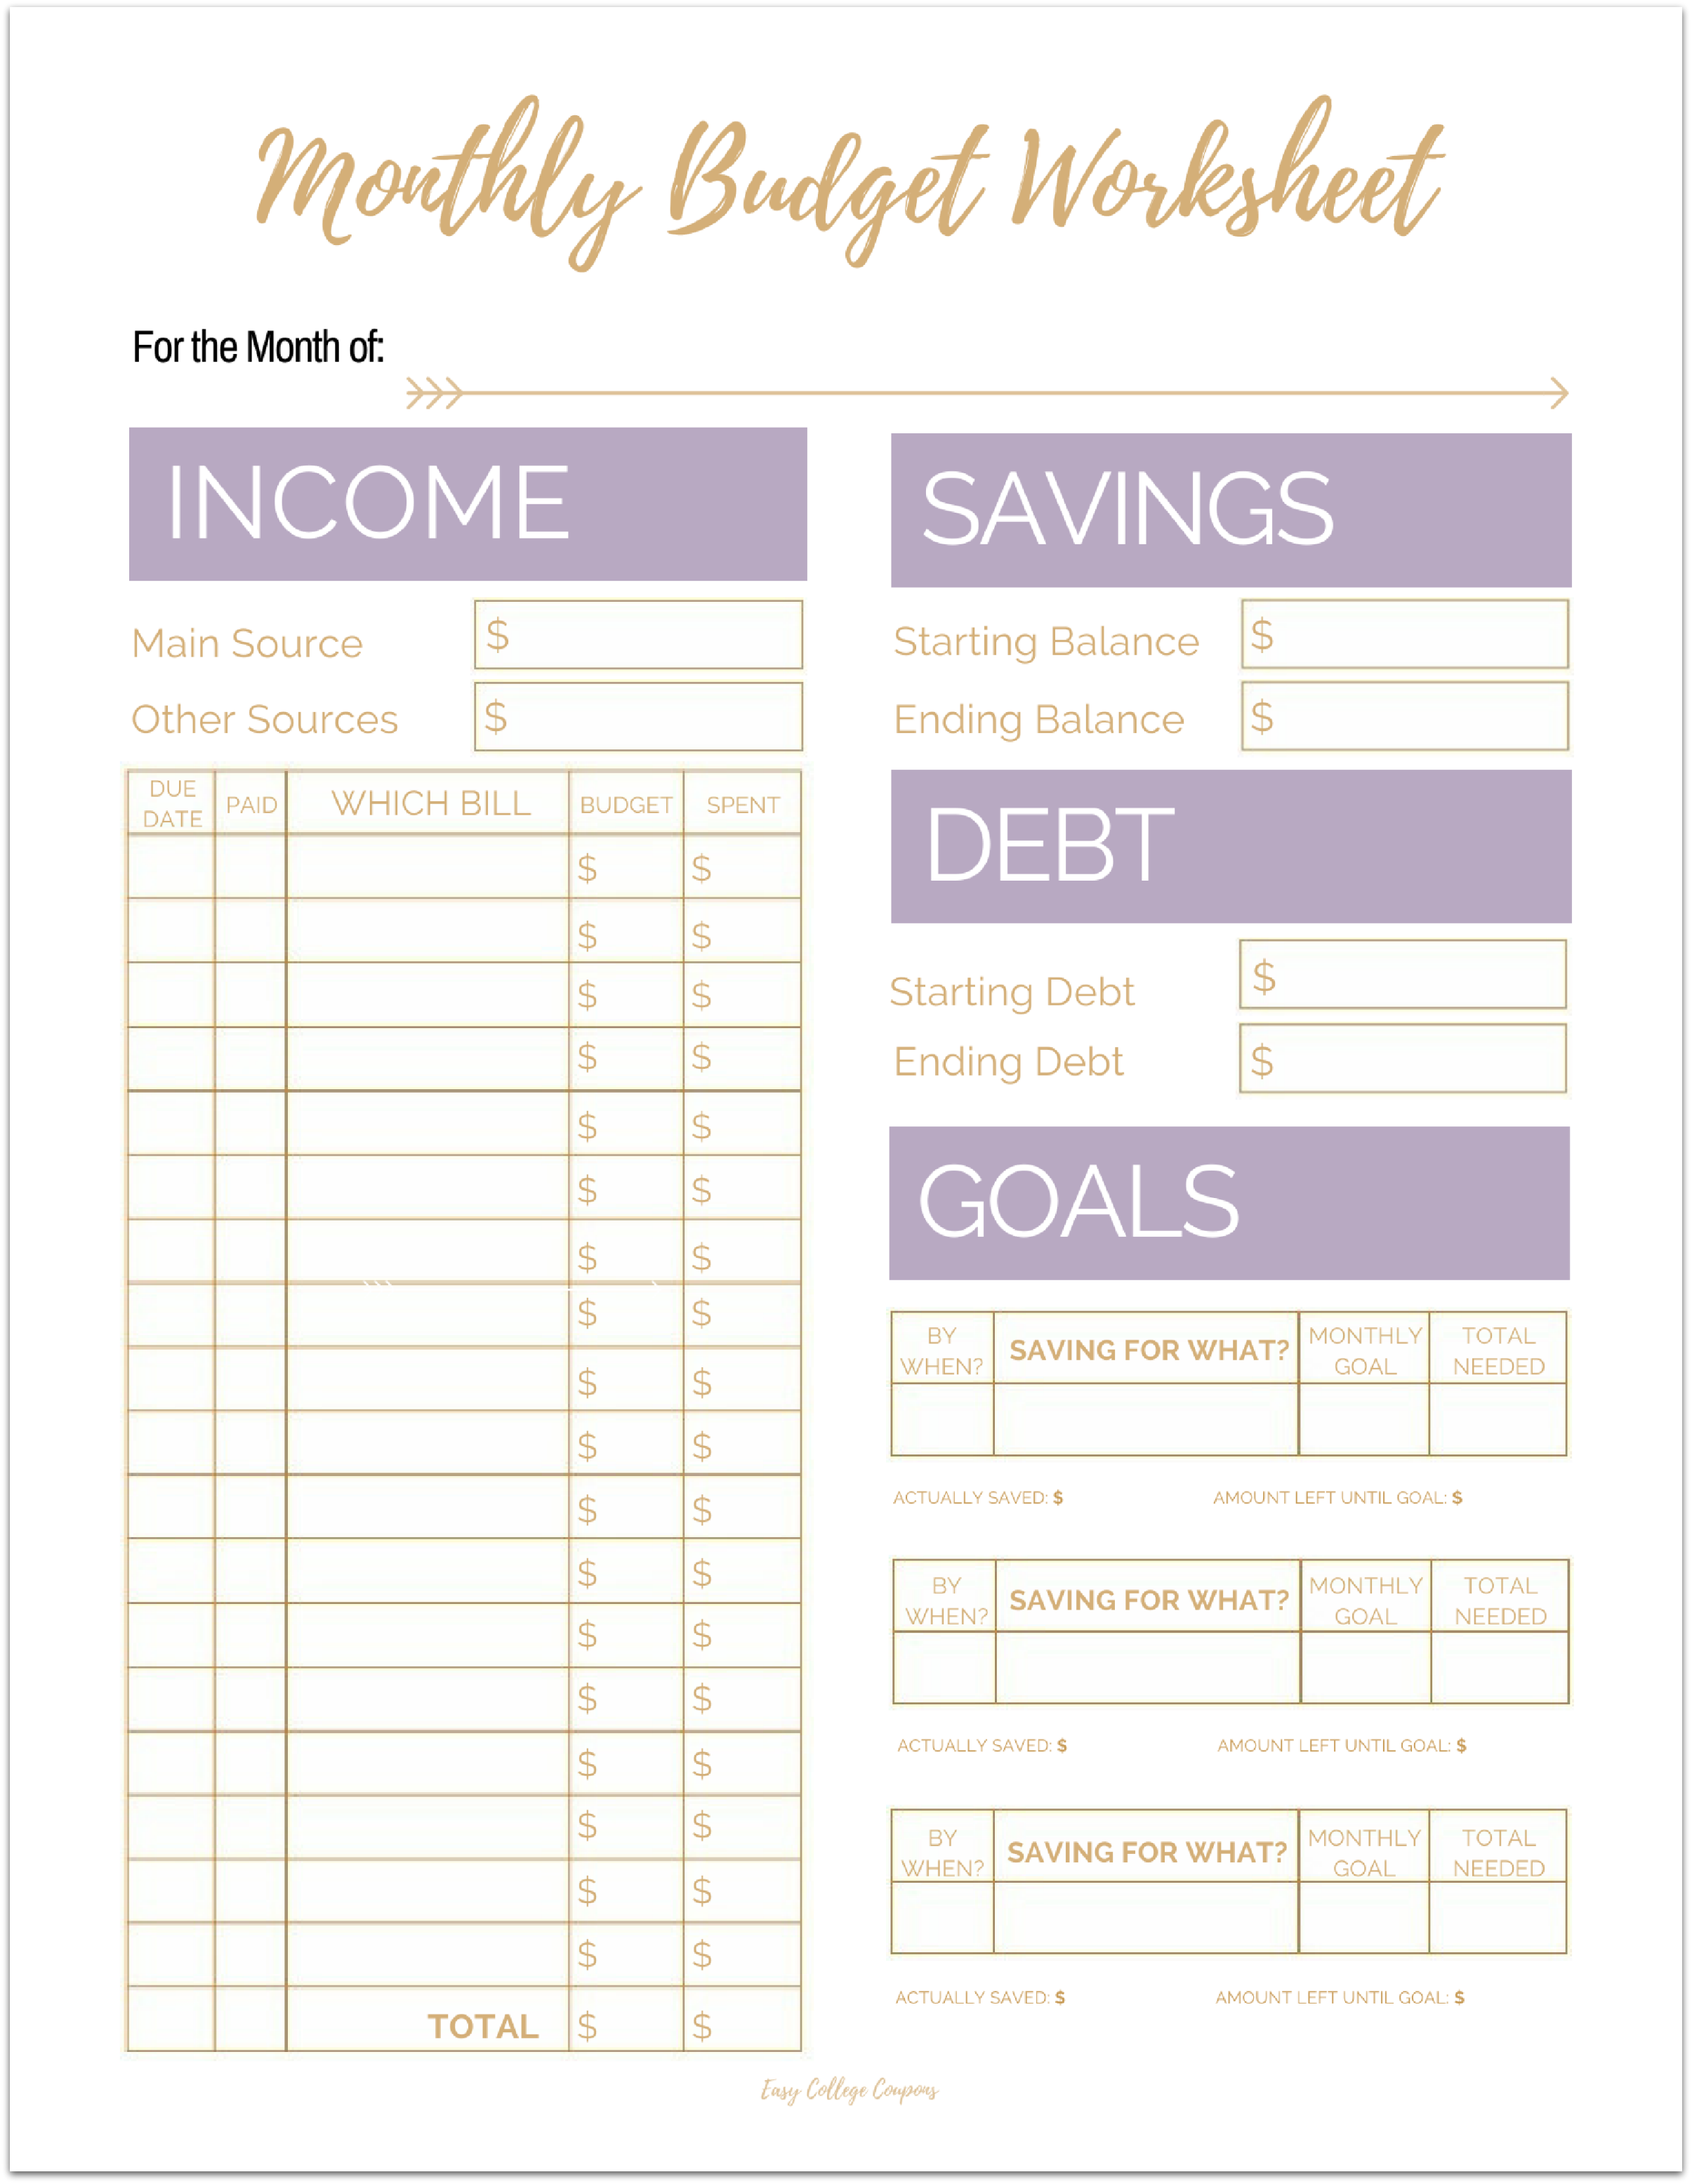 Worksheets Free Printable Budget Worksheet free printable monthly budget worksheets the enter your information below to get password for my resource library